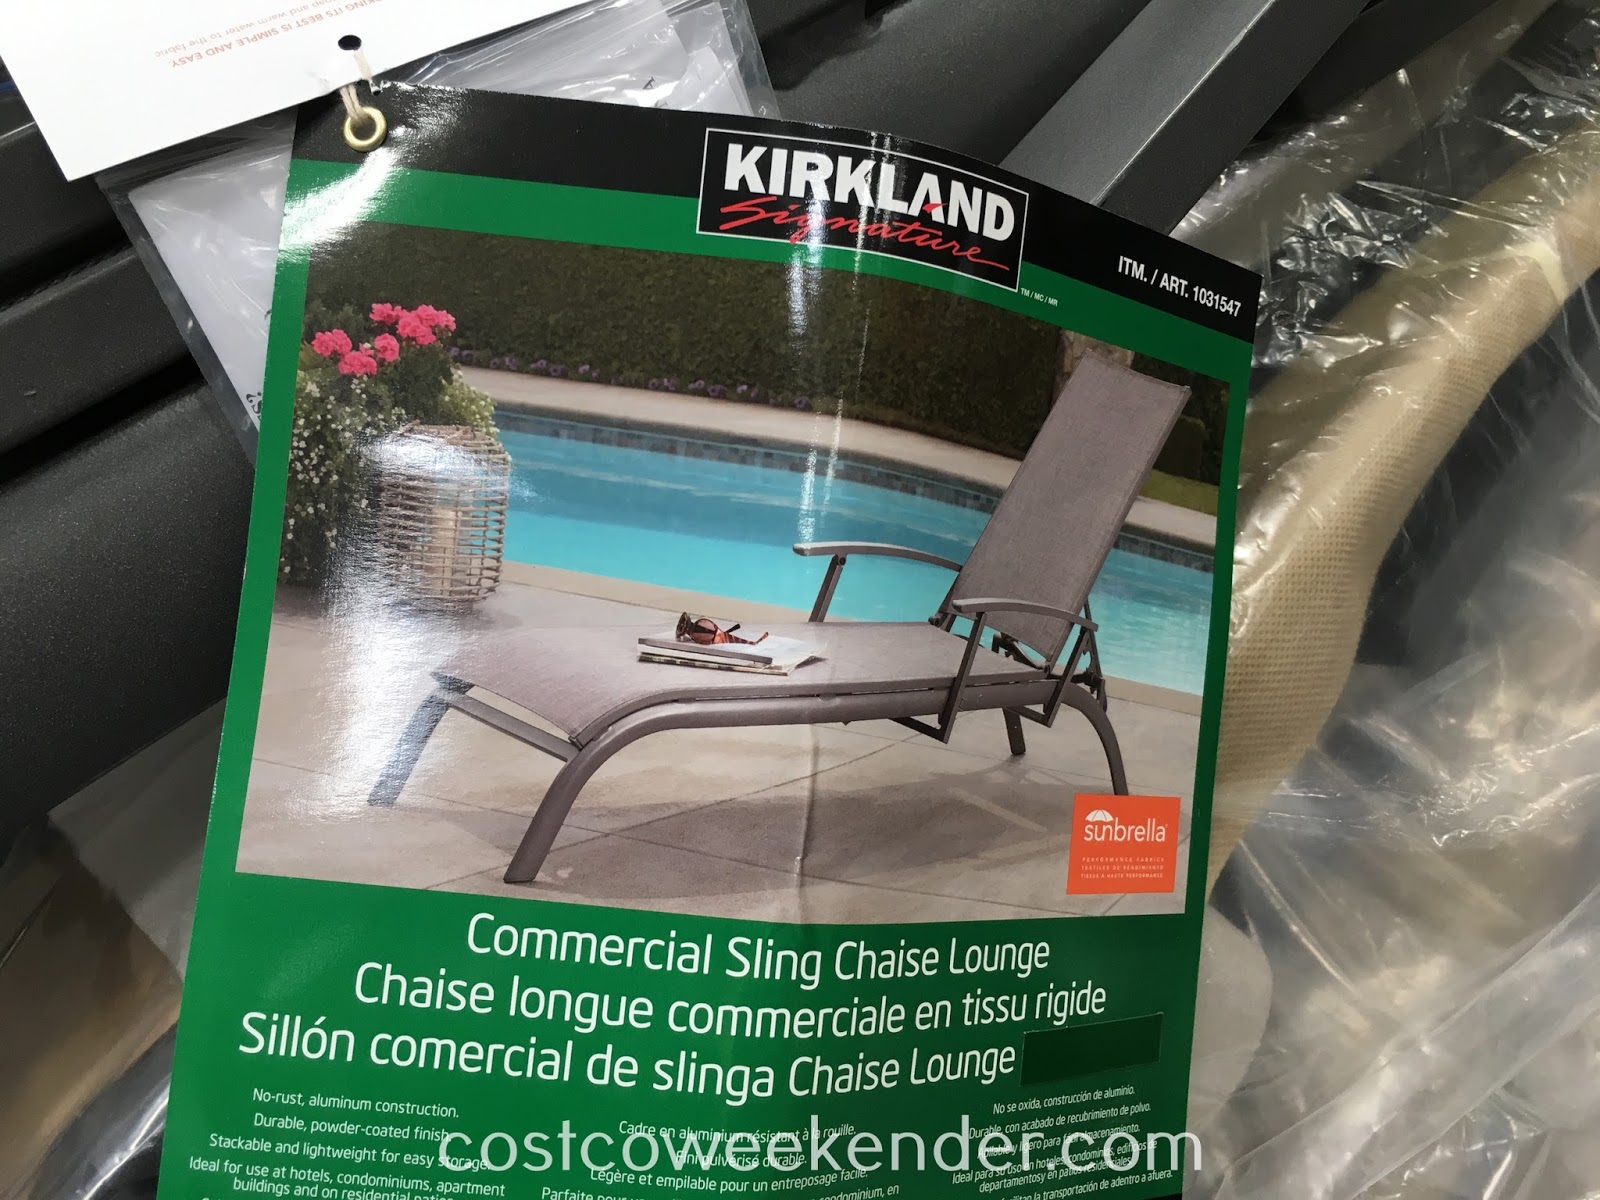 Costco Lounge Chairs Kirkland Signature Commercial Sling Chaise Lounge Costco Weekender